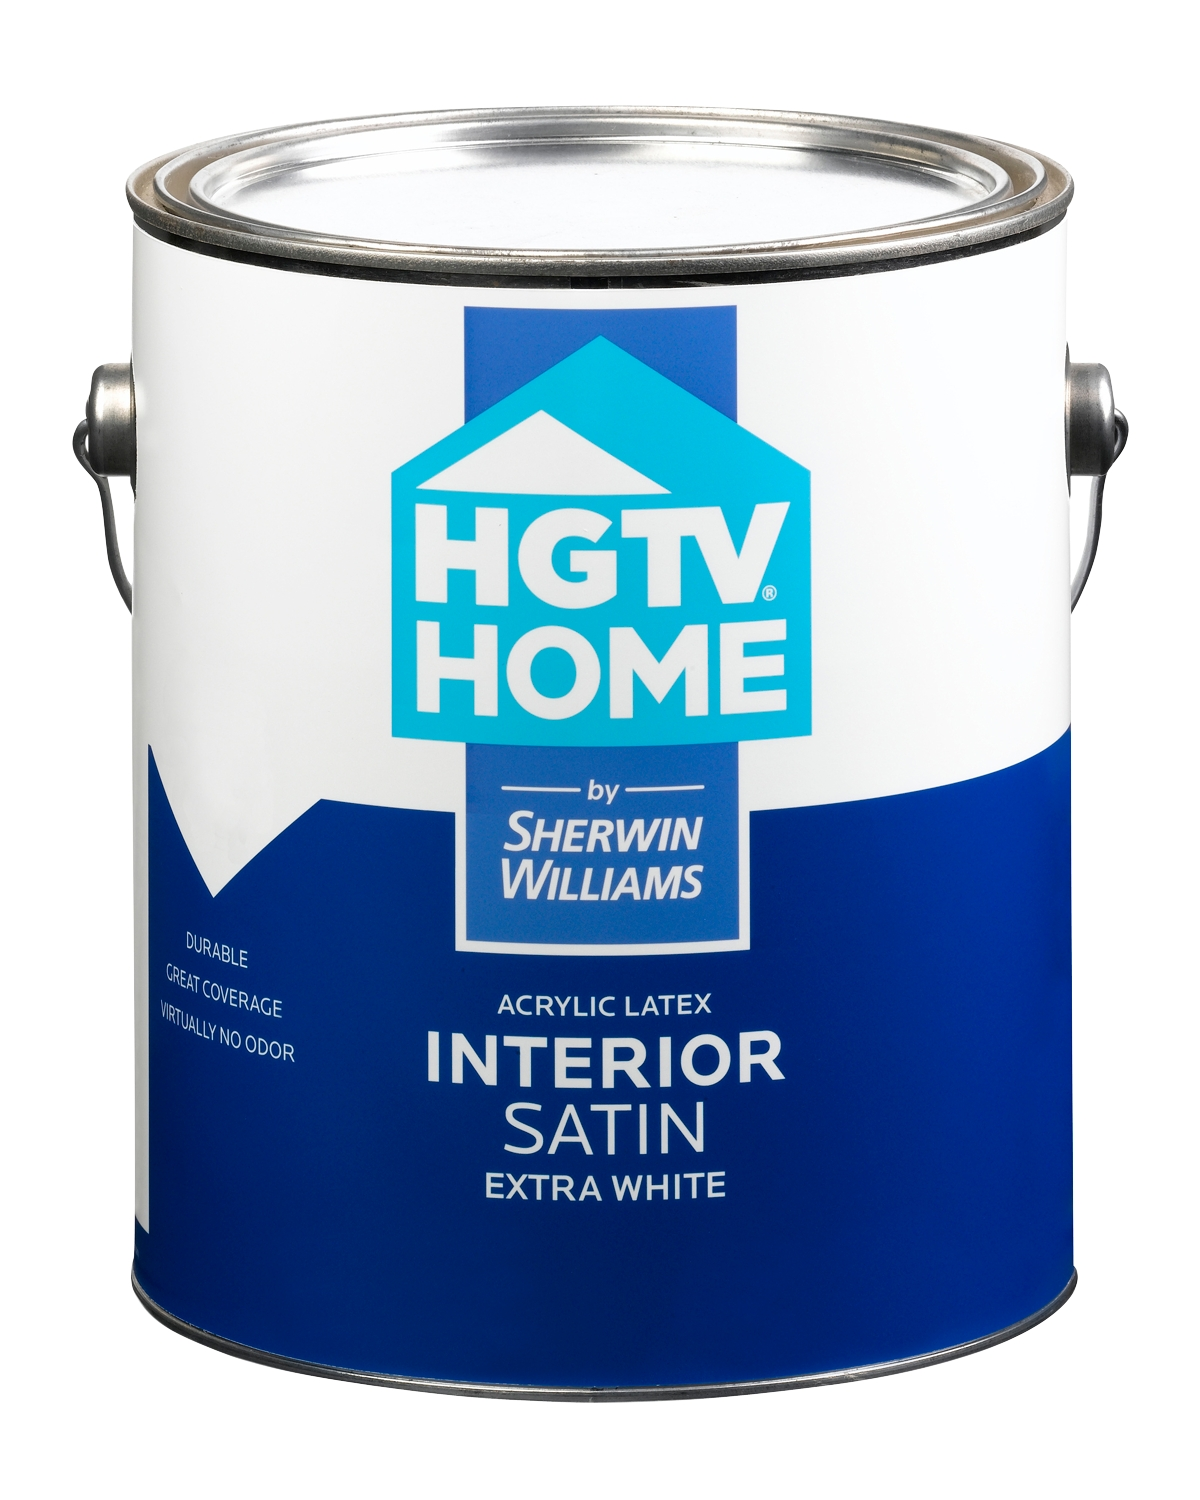 HGTV HOME™ by Sherwin-Williams Interior Paint